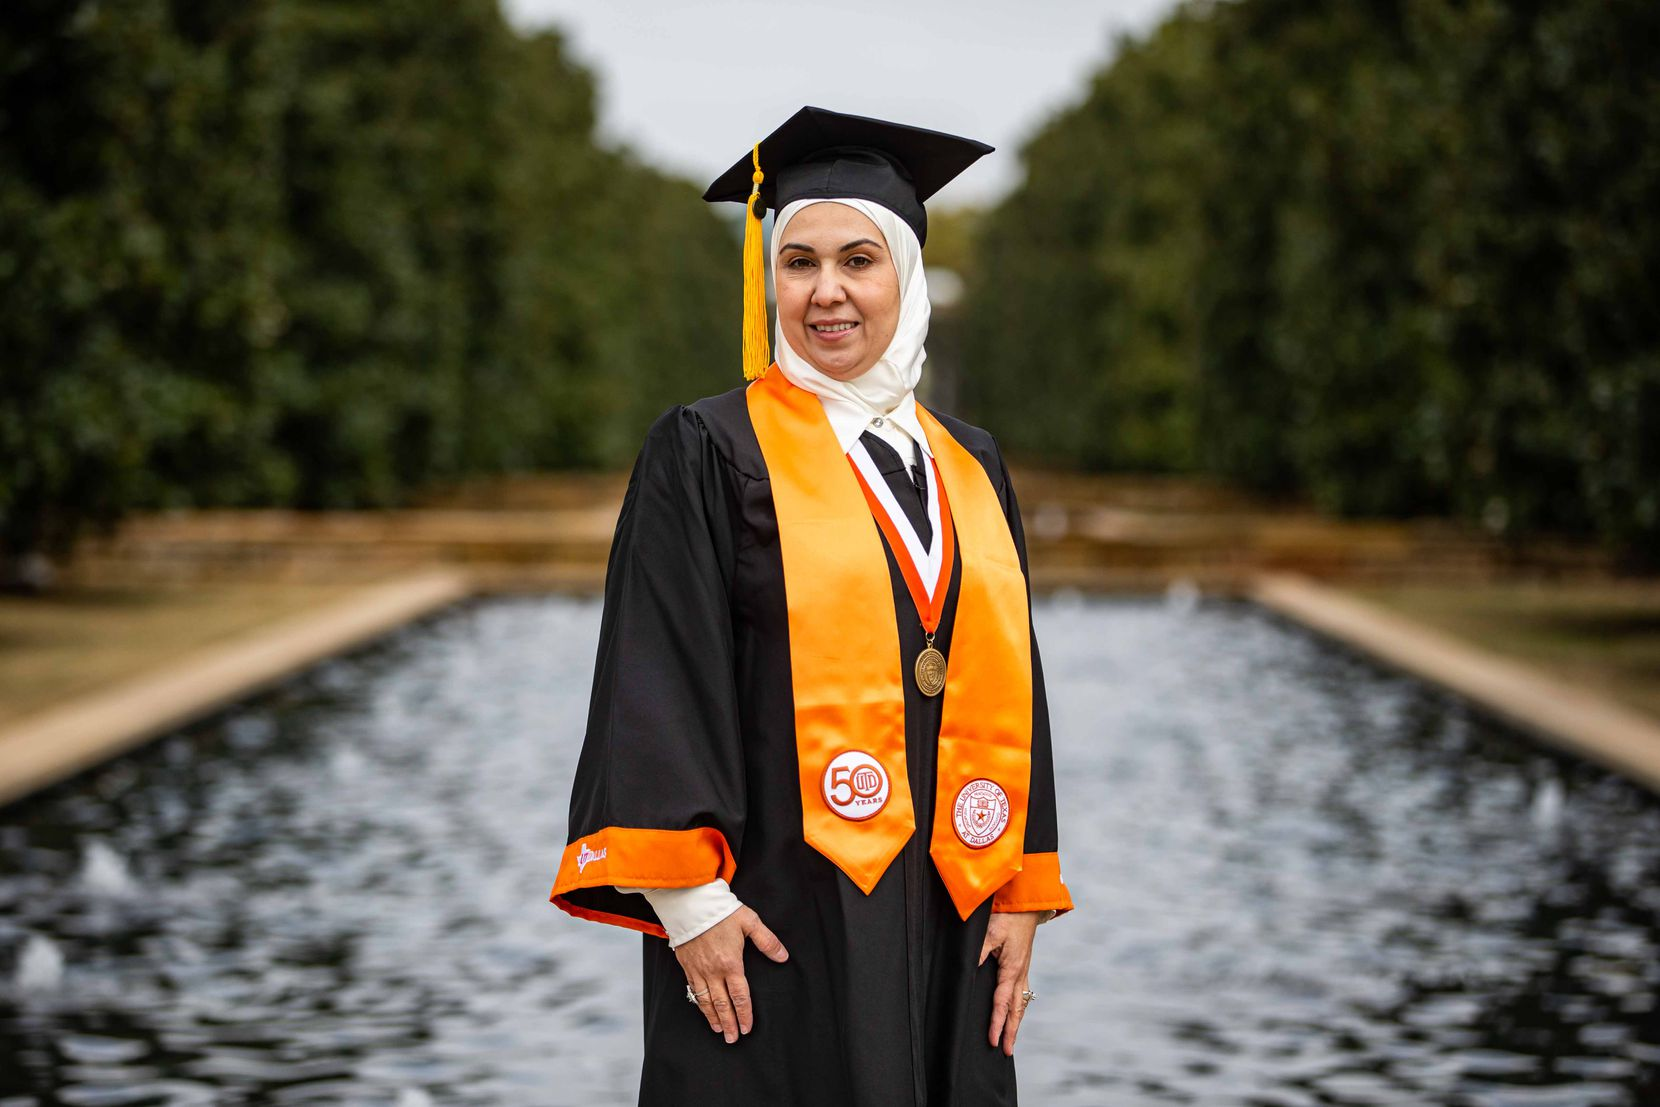 Ruba Kuzbari poses with her cap and gown at UTD. Kuzbari is graduating with a degree in public affairs and hopes to start a nonprofit after getting her master's degree at UTD in Richardson on Wednesday, December 16, 2020. (Lola Gomez/The Dallas Morning News)